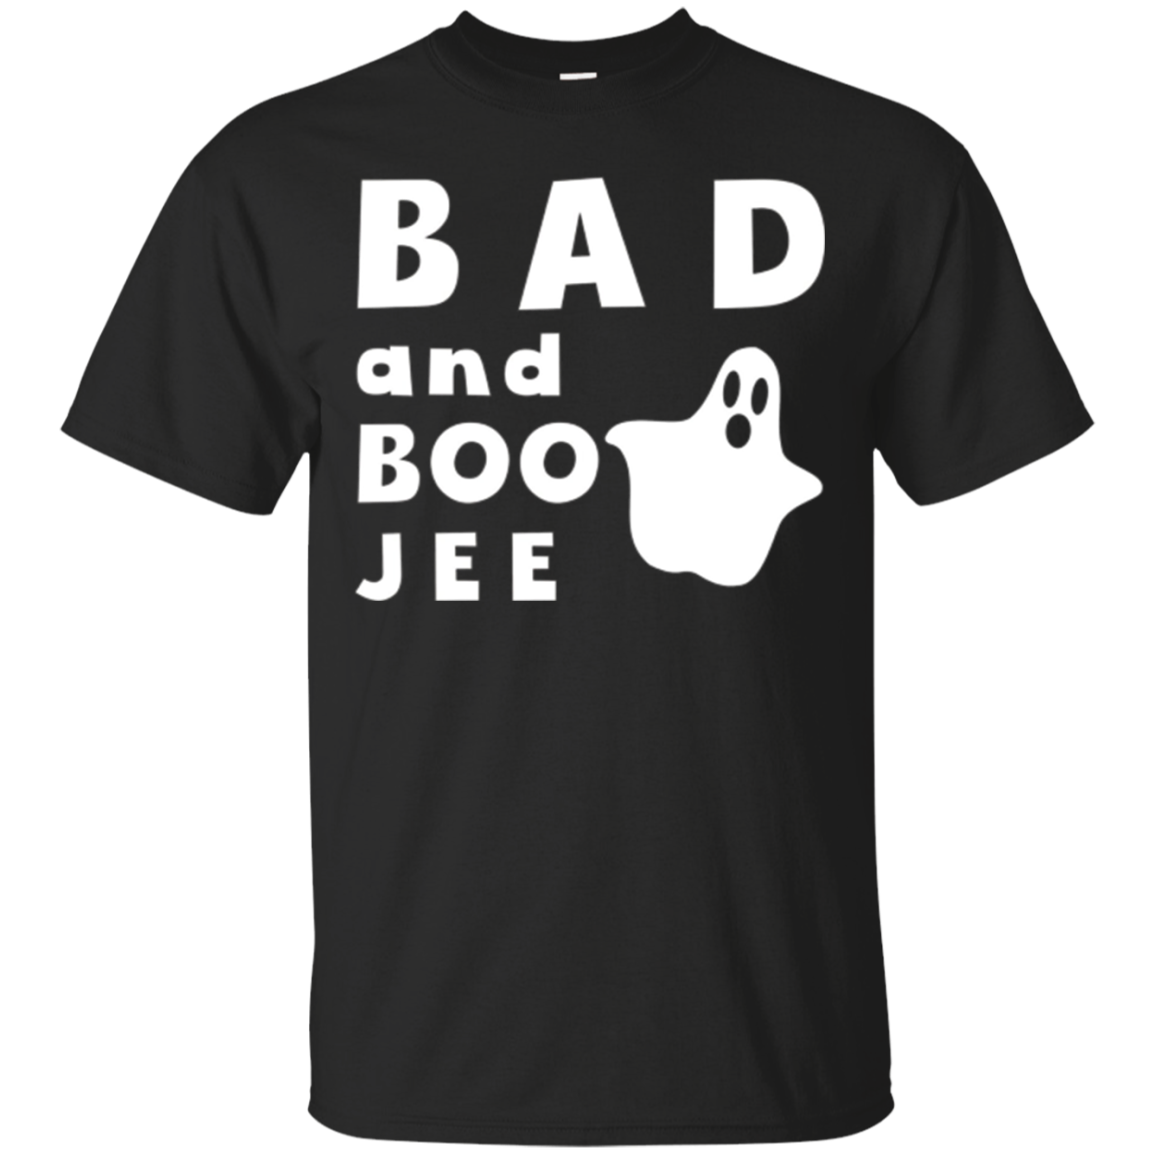 Bad and Boo Jee Graphic Ghost T-shirt